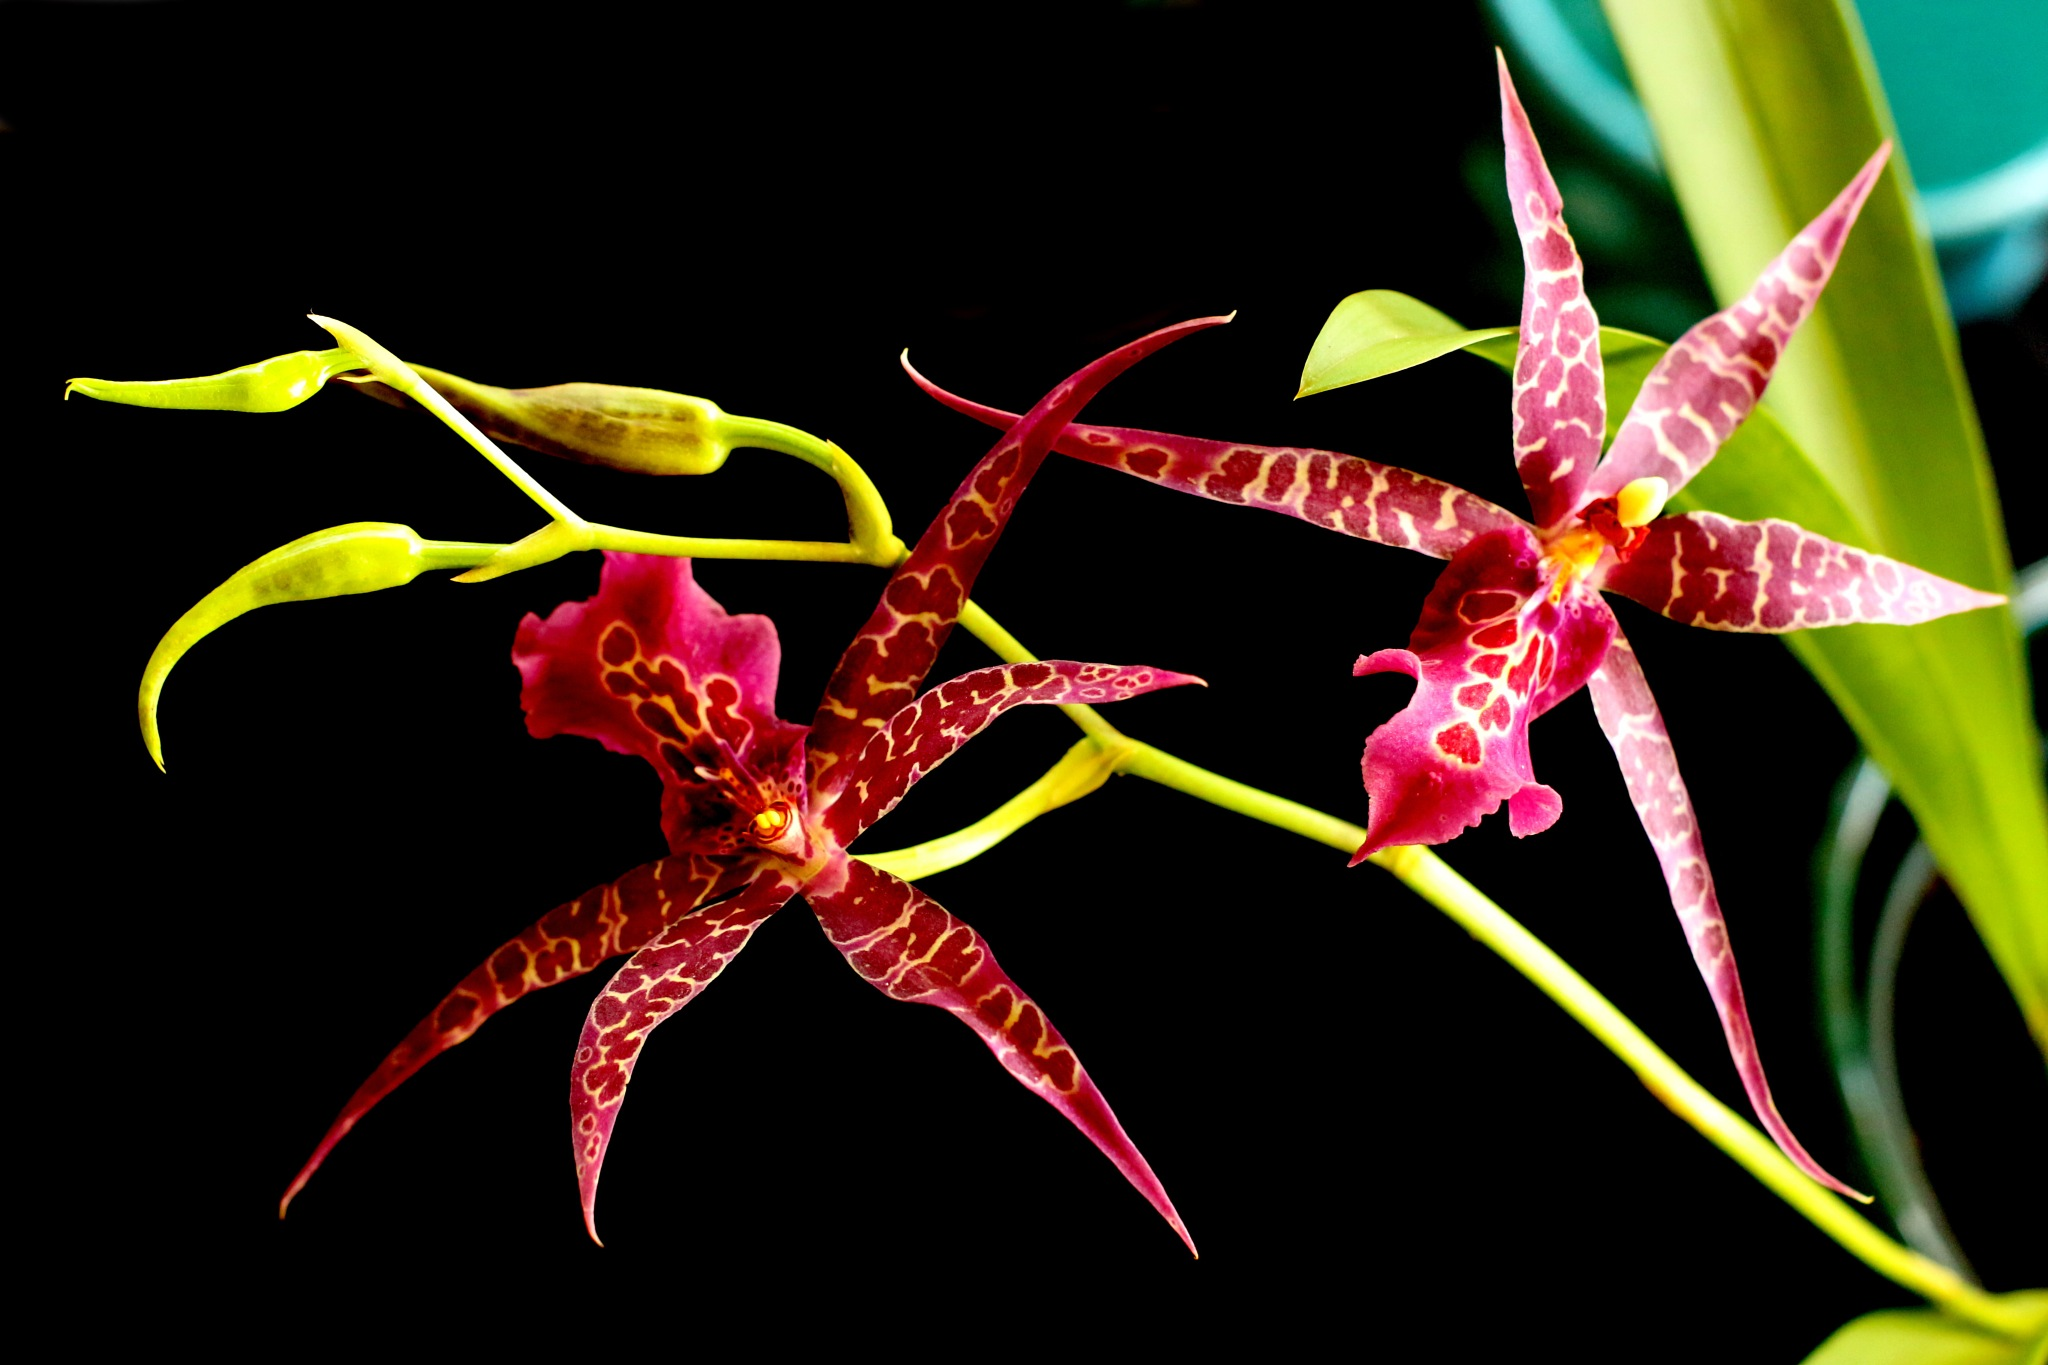 Spider orchid by Nestor